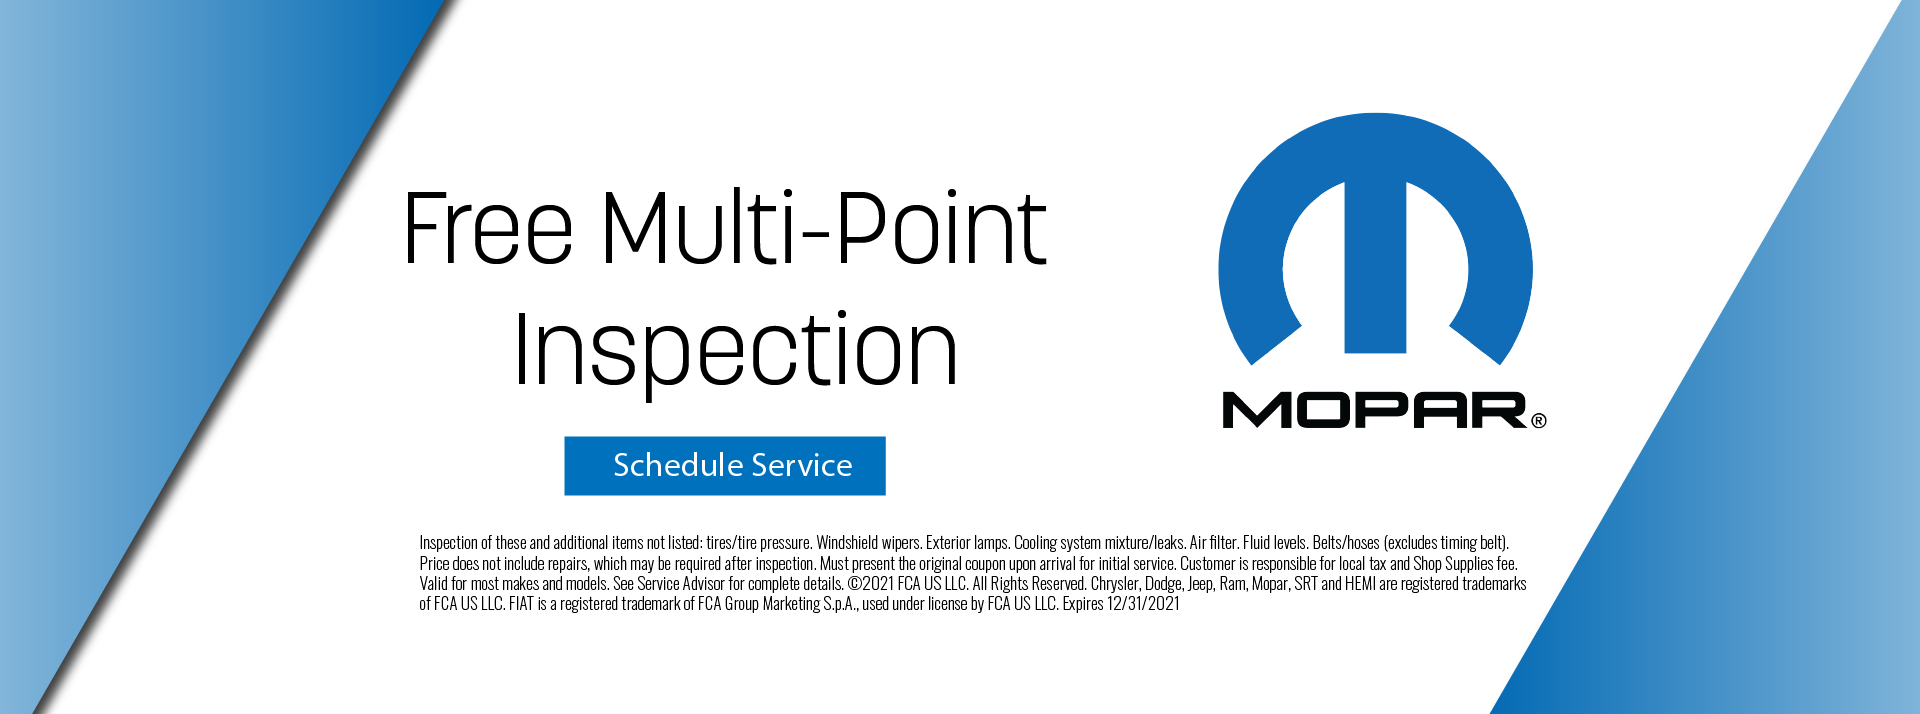 multipoint free